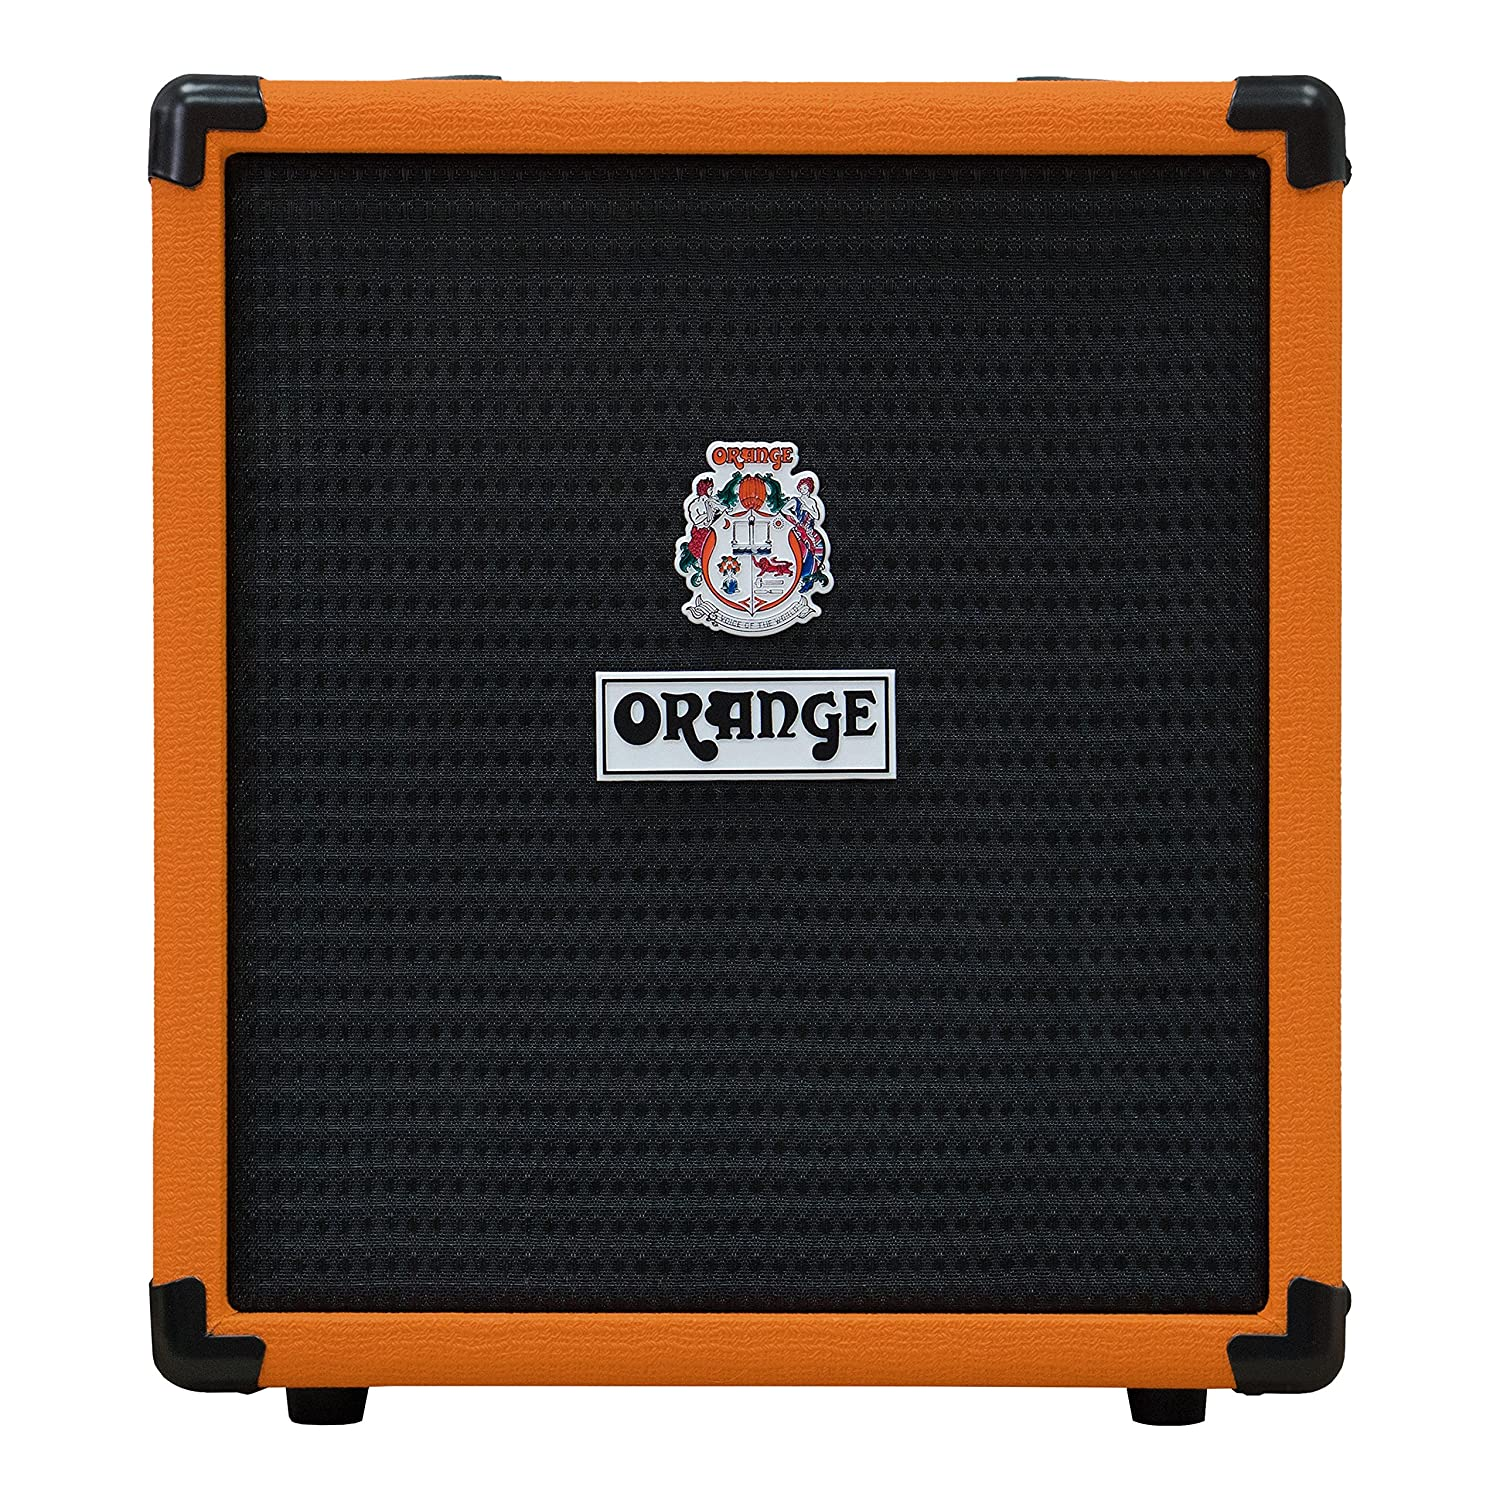 4. Orange Crush Bass 25W Bass Guitar Combo Amp, Orange